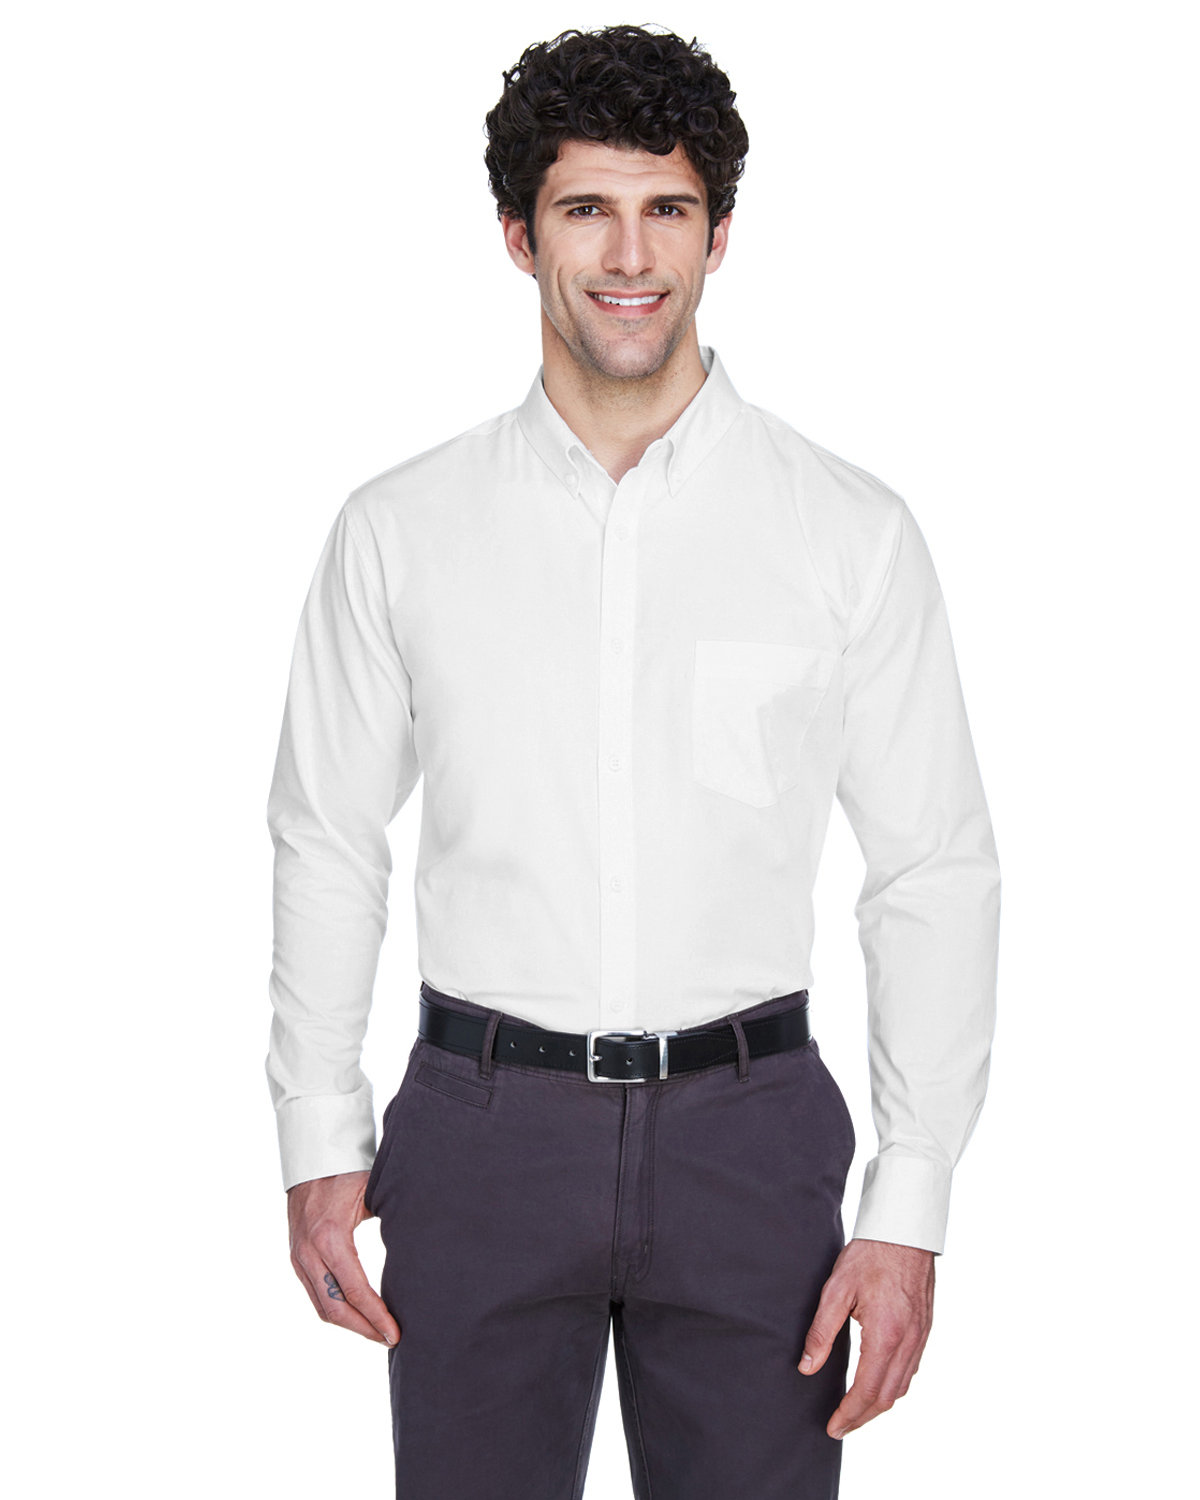 Core 365 Men's Operate Long-Sleeve Twill Shirt WHITE